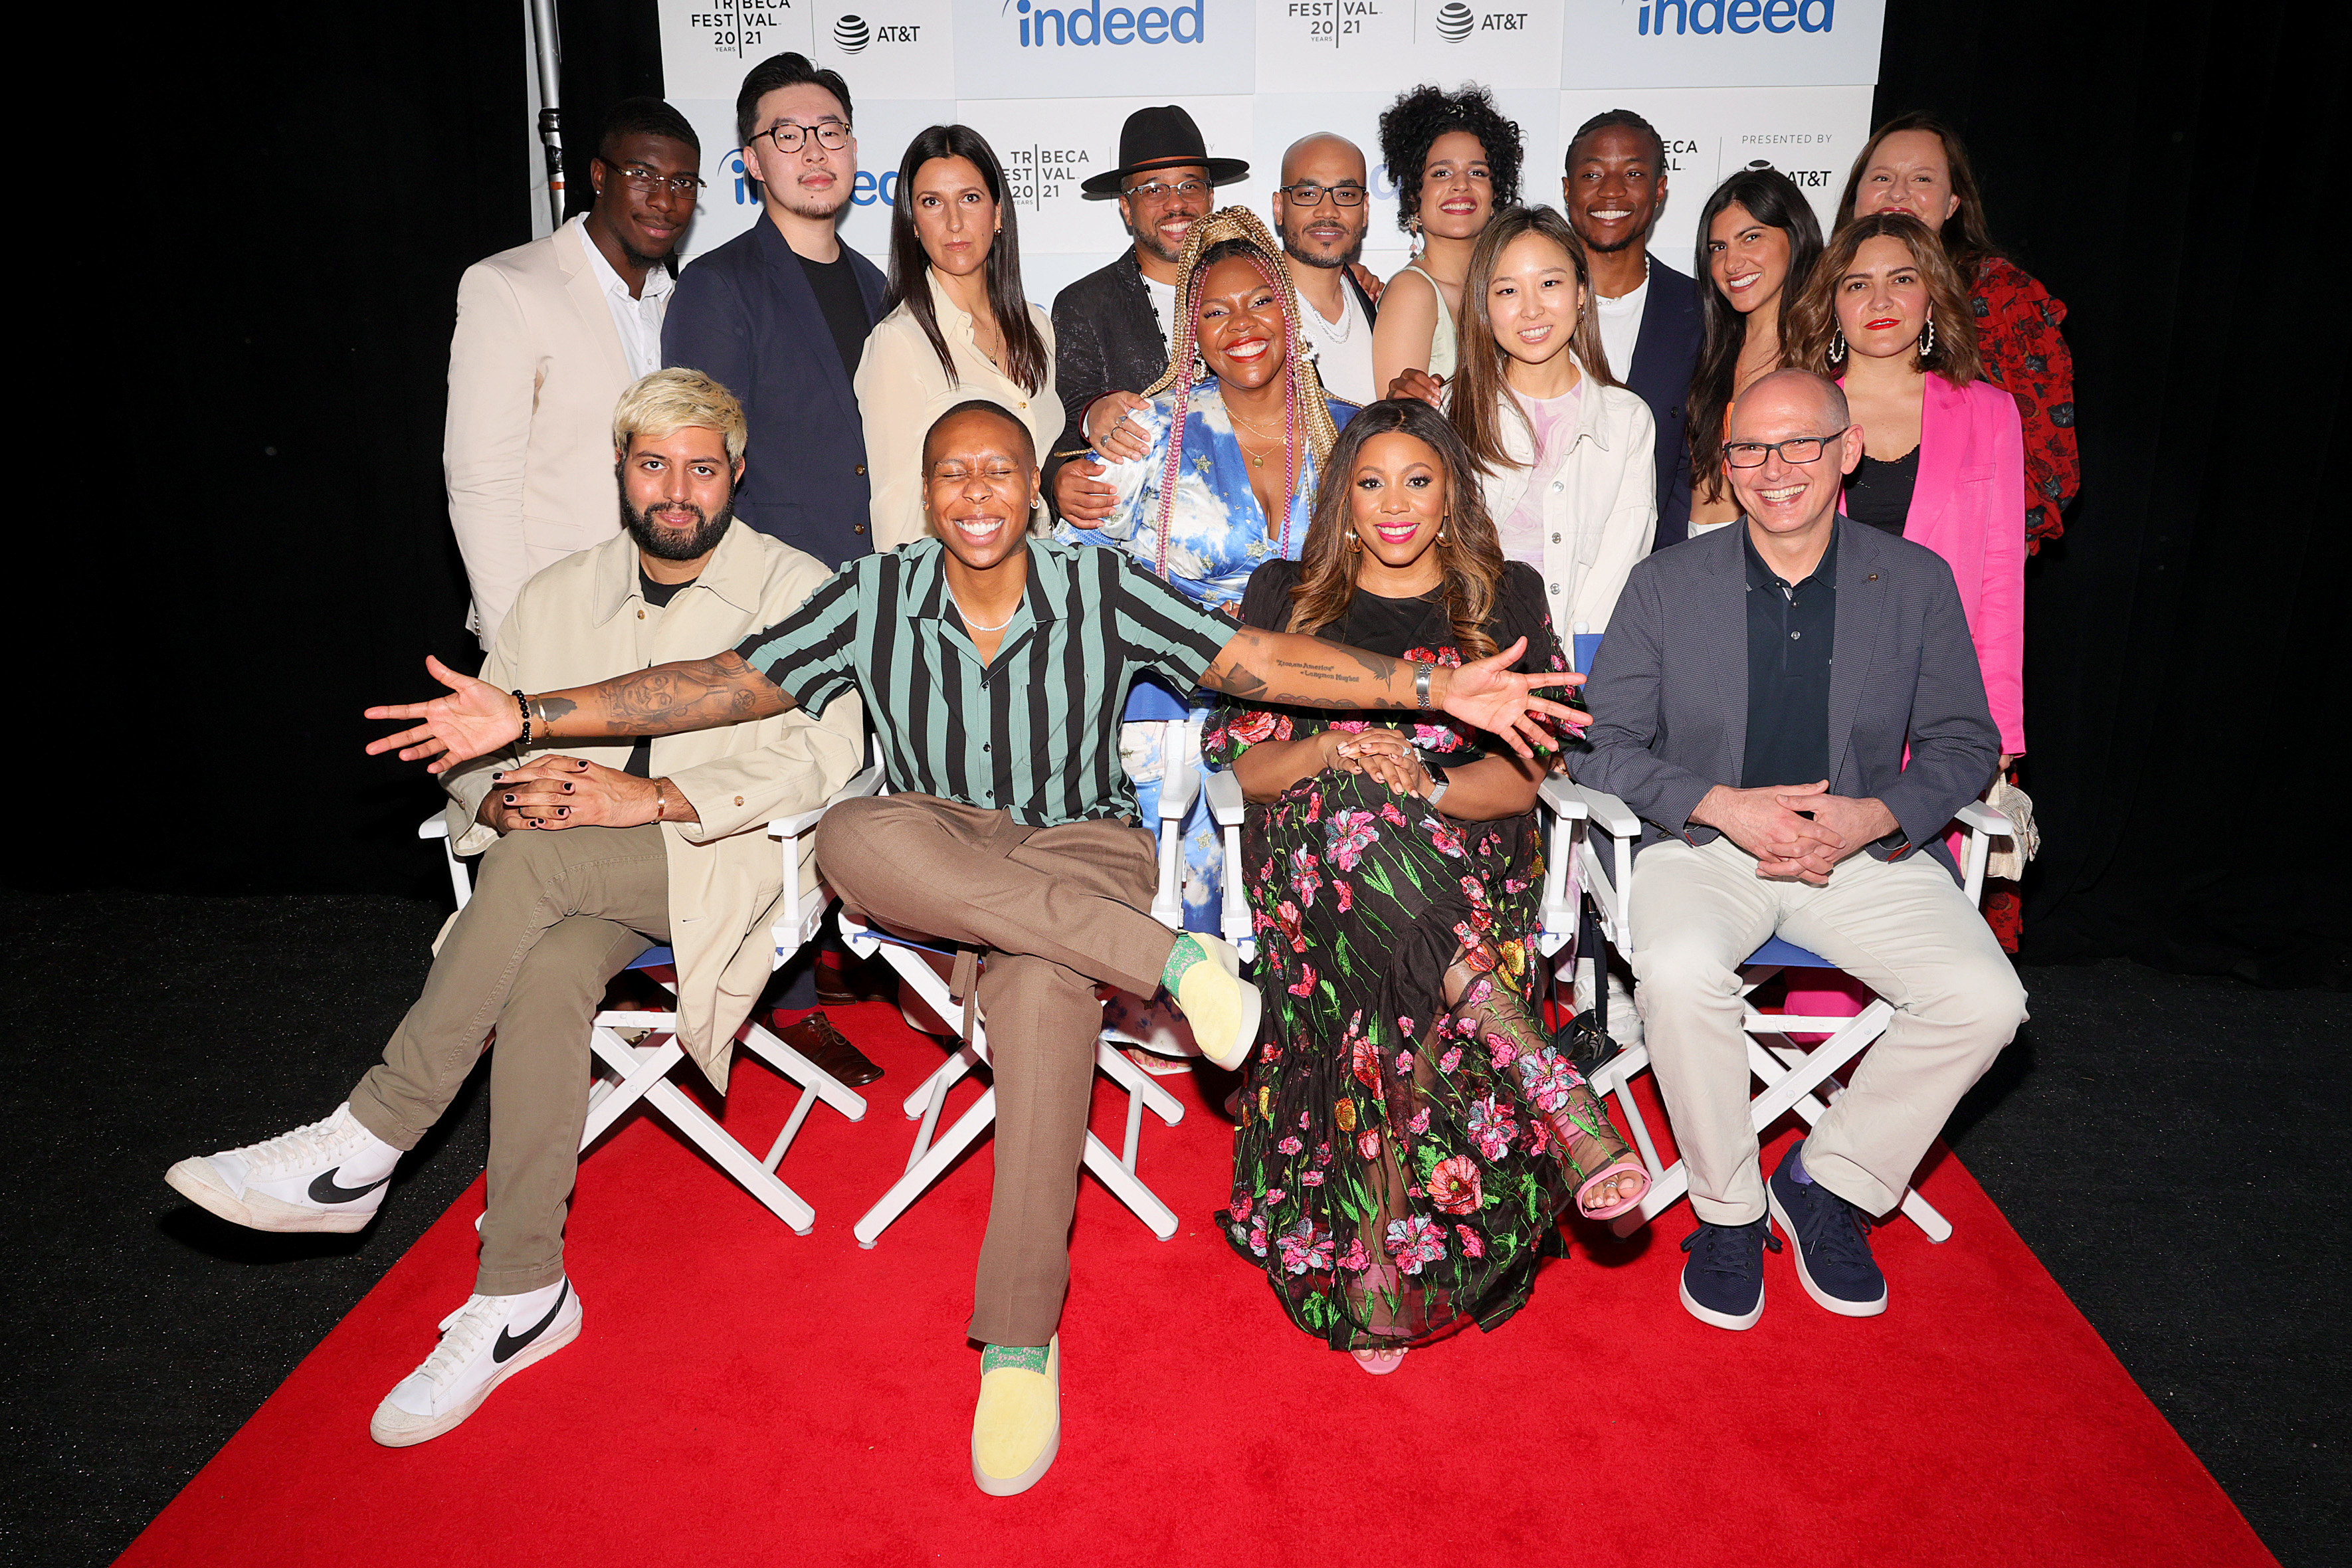 NEW YORK, NEW YORK - JUNE 16: L-R (back-row): Elisee Junior St. Preux, Johnson Cheng, Dre Ryan, Quincy LeNear Gossfield, Stacy Pascal Gaspard, Deondray LeNear Gossfield, Gabriela Ortega, Shelly Yo , Boma Iluma, (front-row): Rishi Rajani, Lena Waithe, LaFawn Davis, and Chris Hyams attend the Indeed Rising Voices Tribeca Premiere at Pier 76 on June 16, 2021 in New York City. (Photo by Theo Wargo/Getty Images for Indeed)